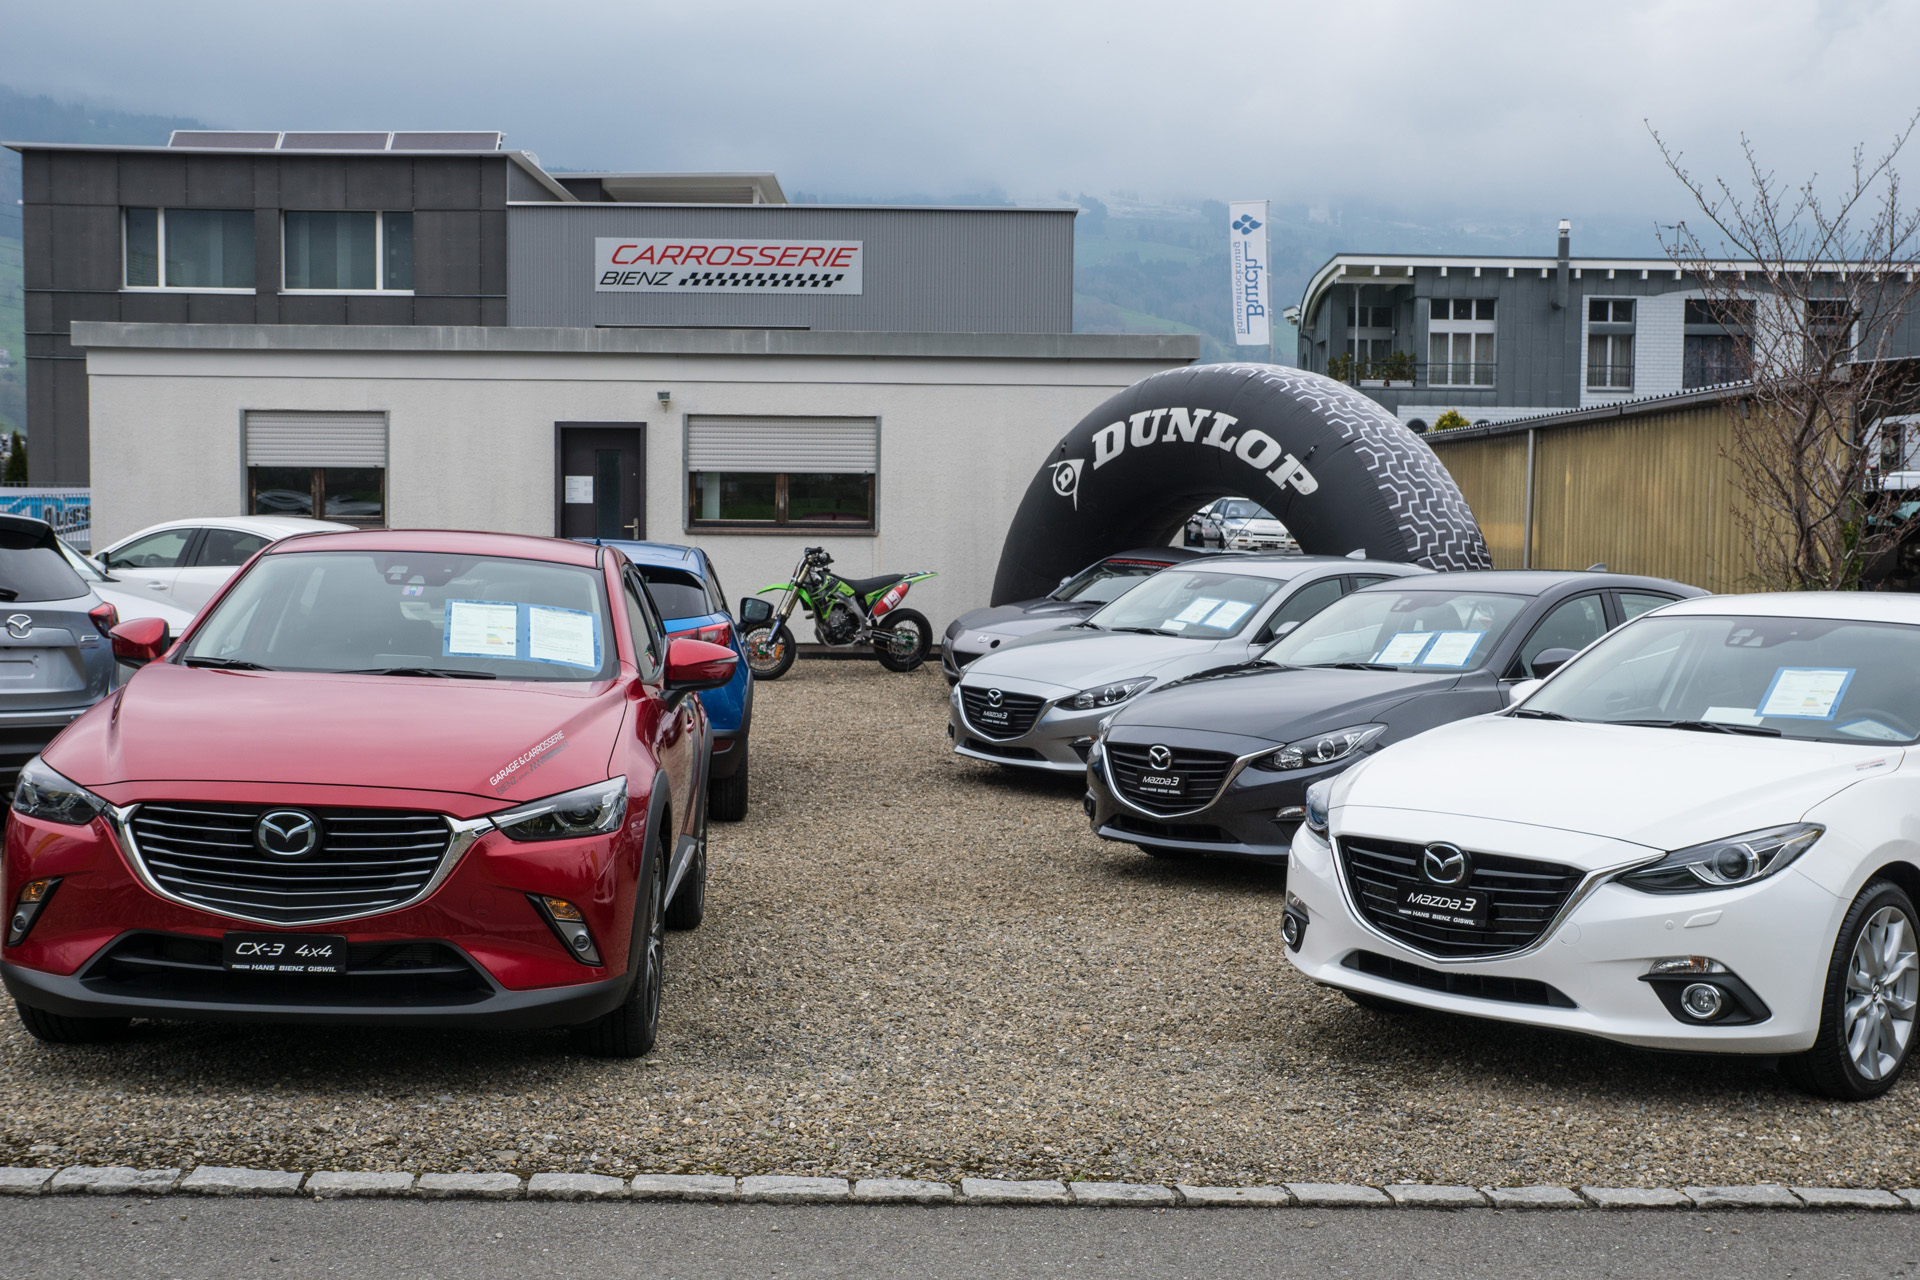 https://garagebienz.mazda.ch/wp-content/uploads/sites/48/2019/12/Ausstellung_Bienz-Garage_2016_21.jpg